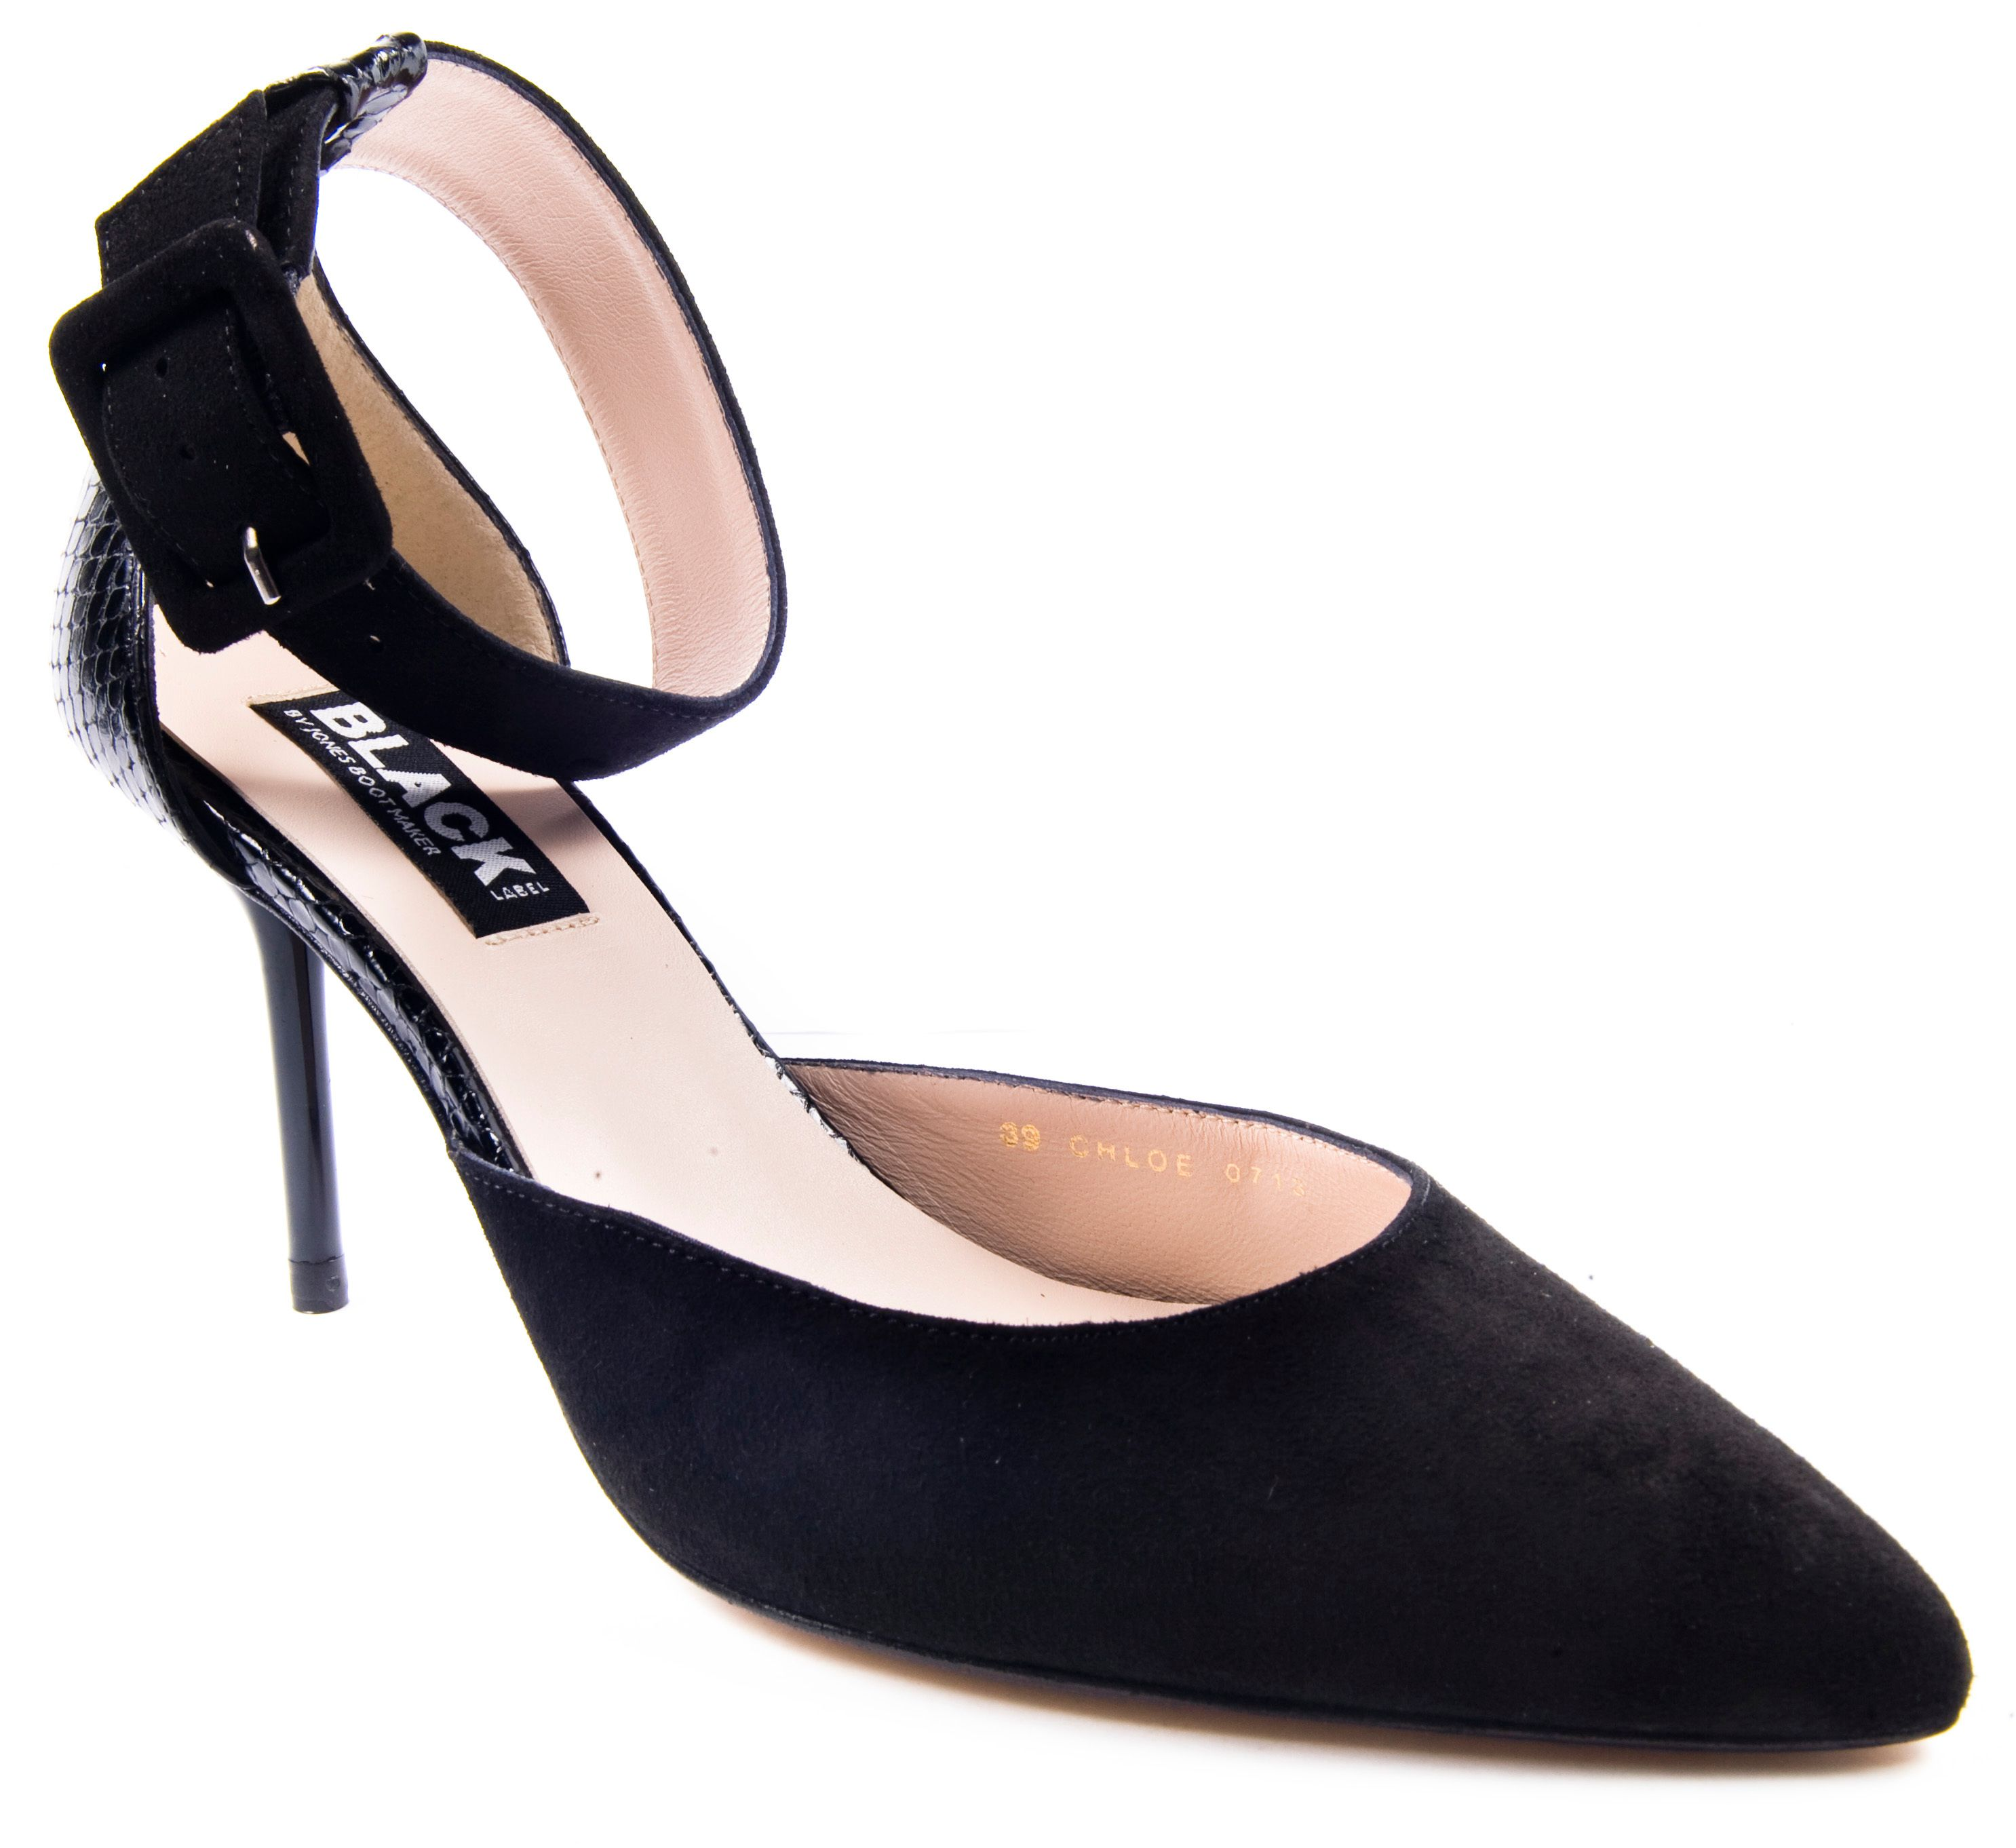 Chloe heeled court shoes